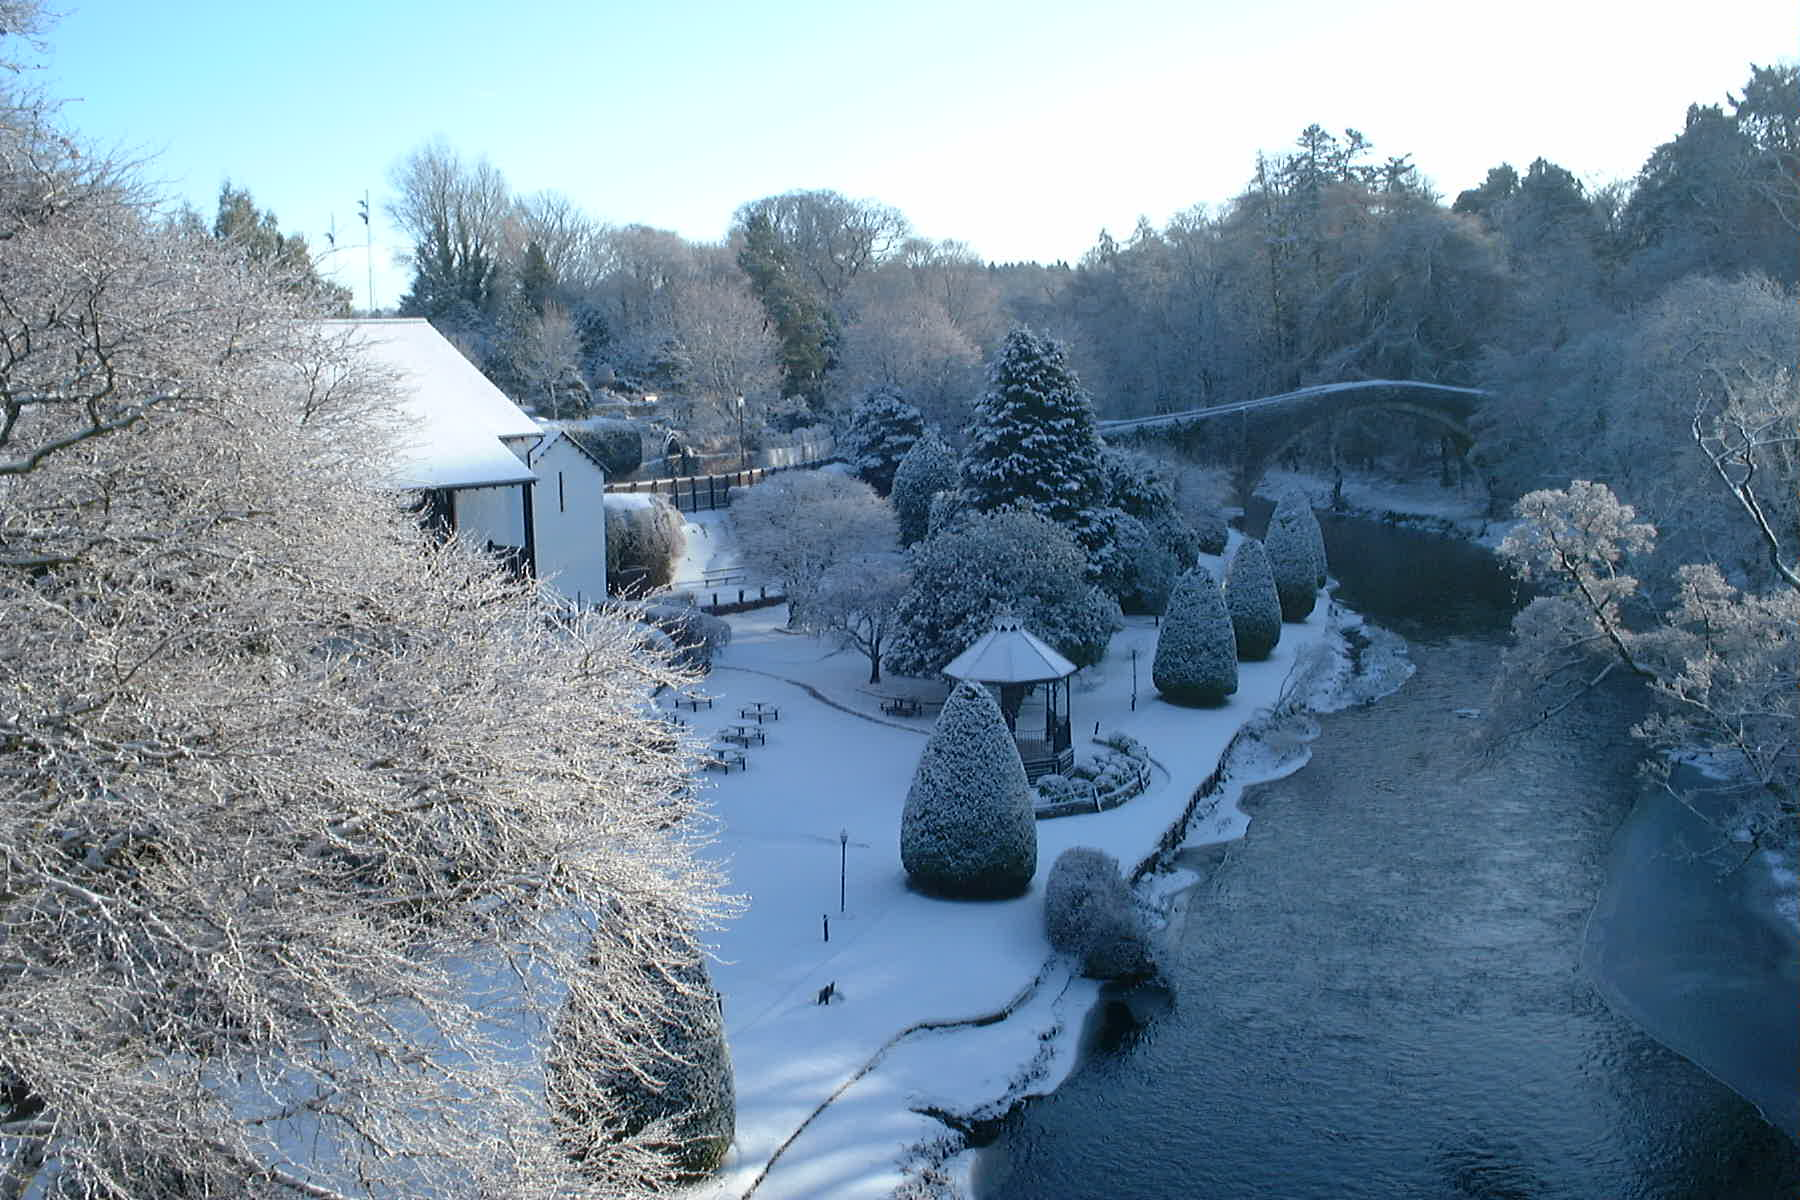 Brig O' Doon, Ayr, Jan 5th 2010 by Reg Tait